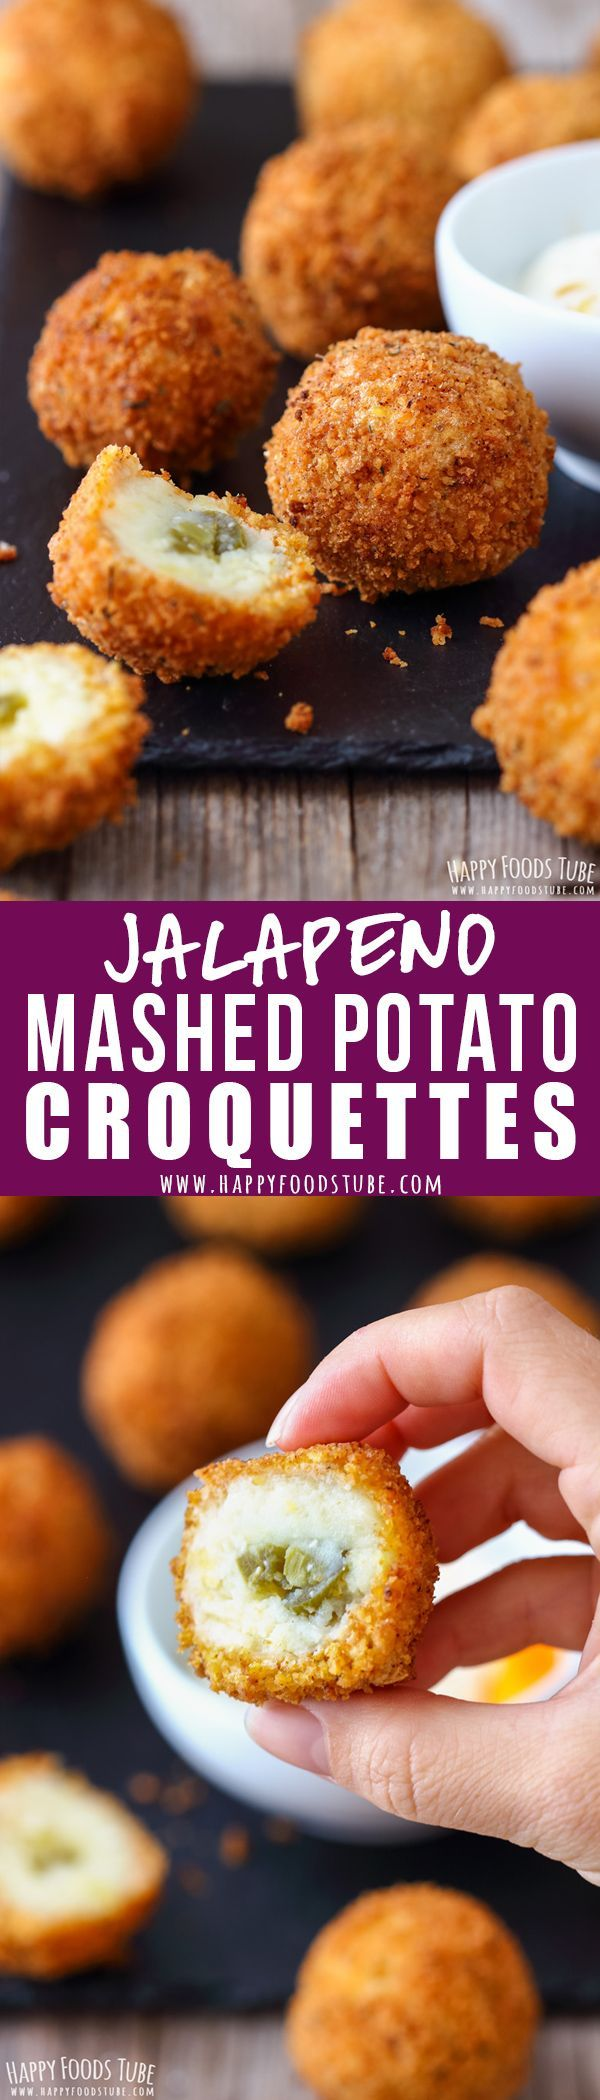 Homemade Mashed Potato Croquettes with Jalapeno Peppers. Great appetizer for any party. #mashedpotato #croquettes #appetizers #recipes #potato #homemade #partyfood #fingerfood #jalapeno #spicy #potatocroquettes #potatoballs @happyfoodstube